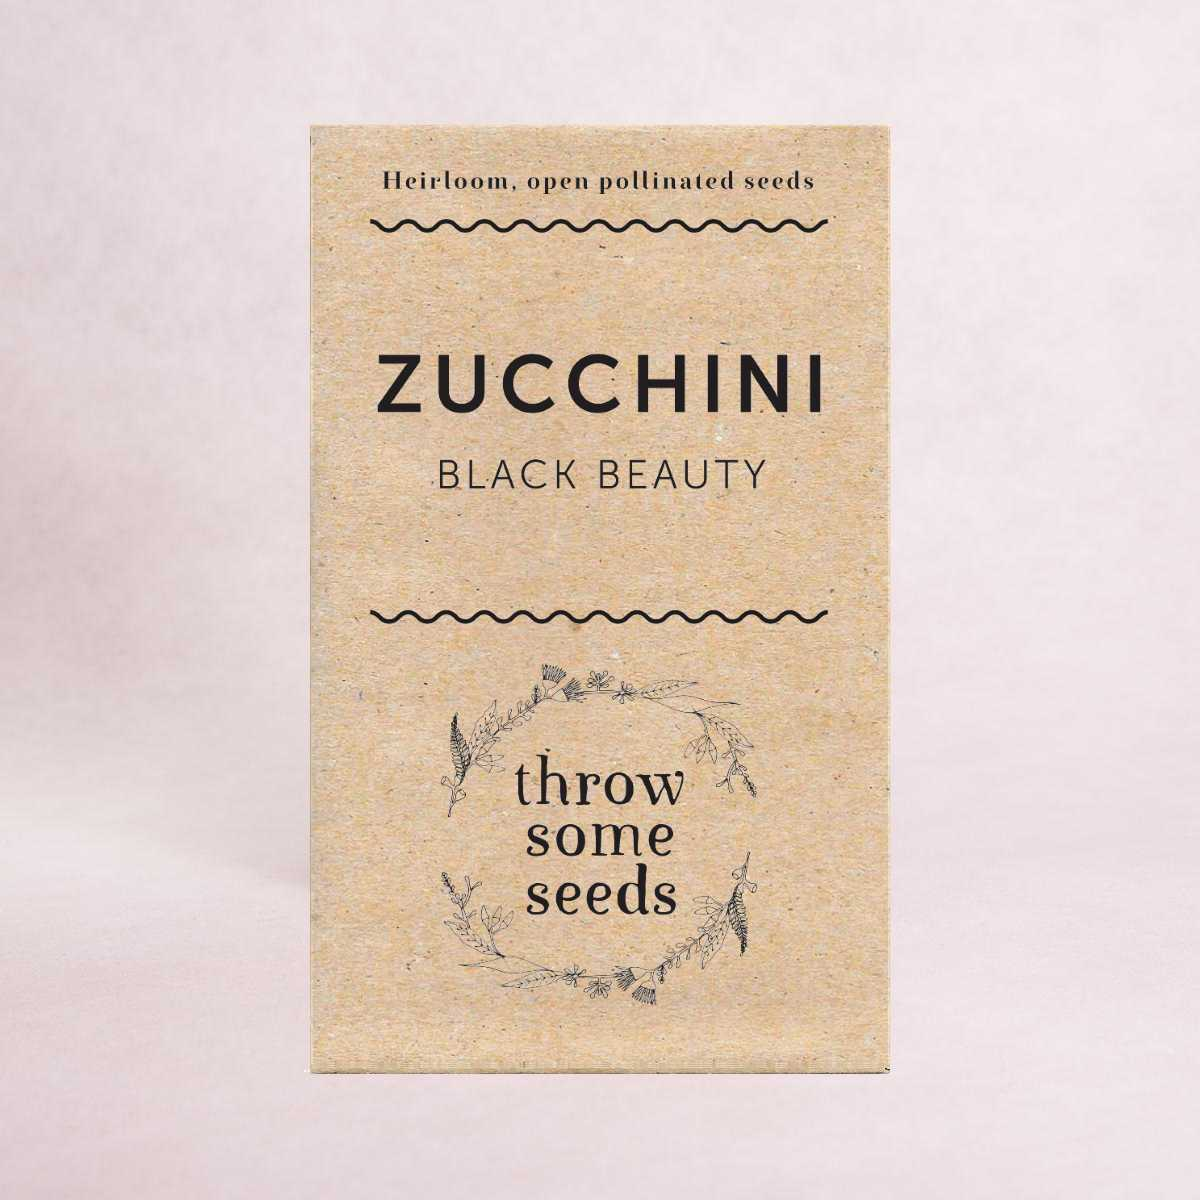 Zucchini (Black Beauty) - Heirloom Seeds - Seeds - Throw Some Seeds